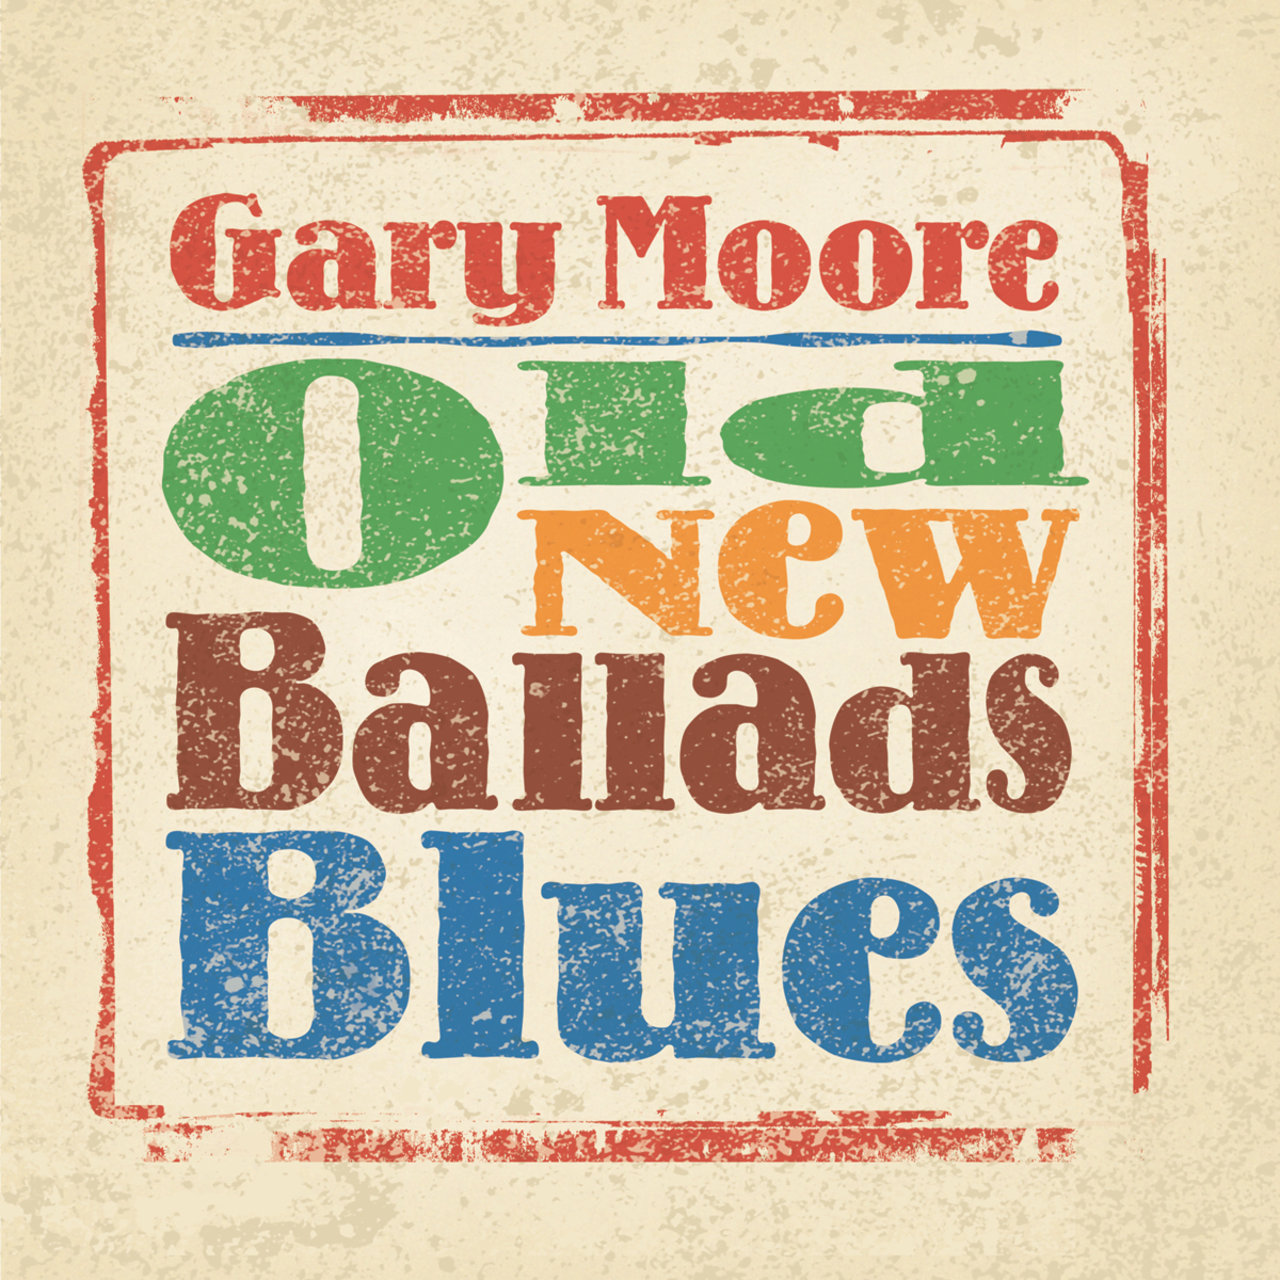 Old, New, Ballads, Blues